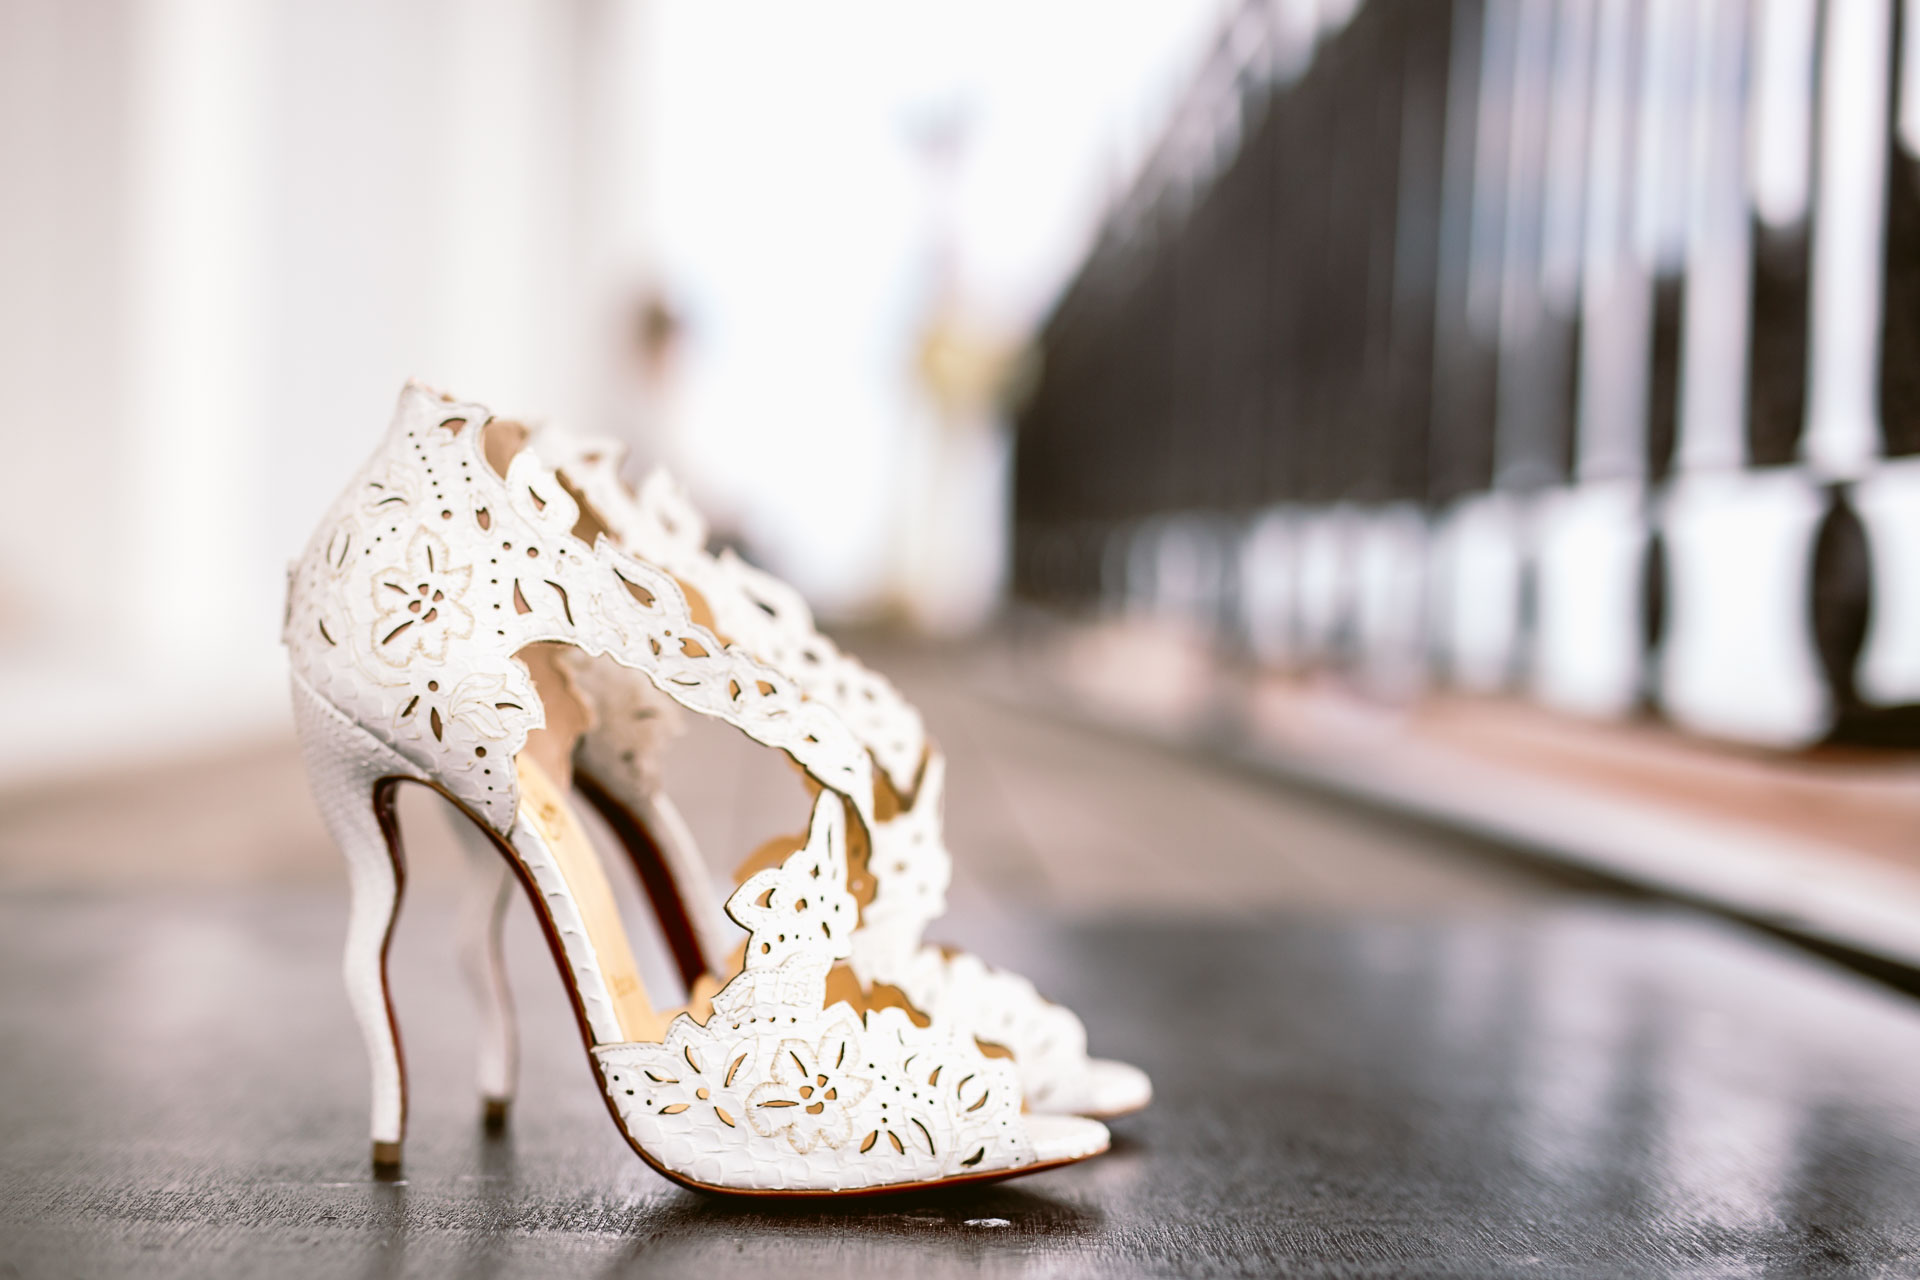 preston court boho wedding alexia and dan wedding shoes limited edition of louboutin wedding shoes